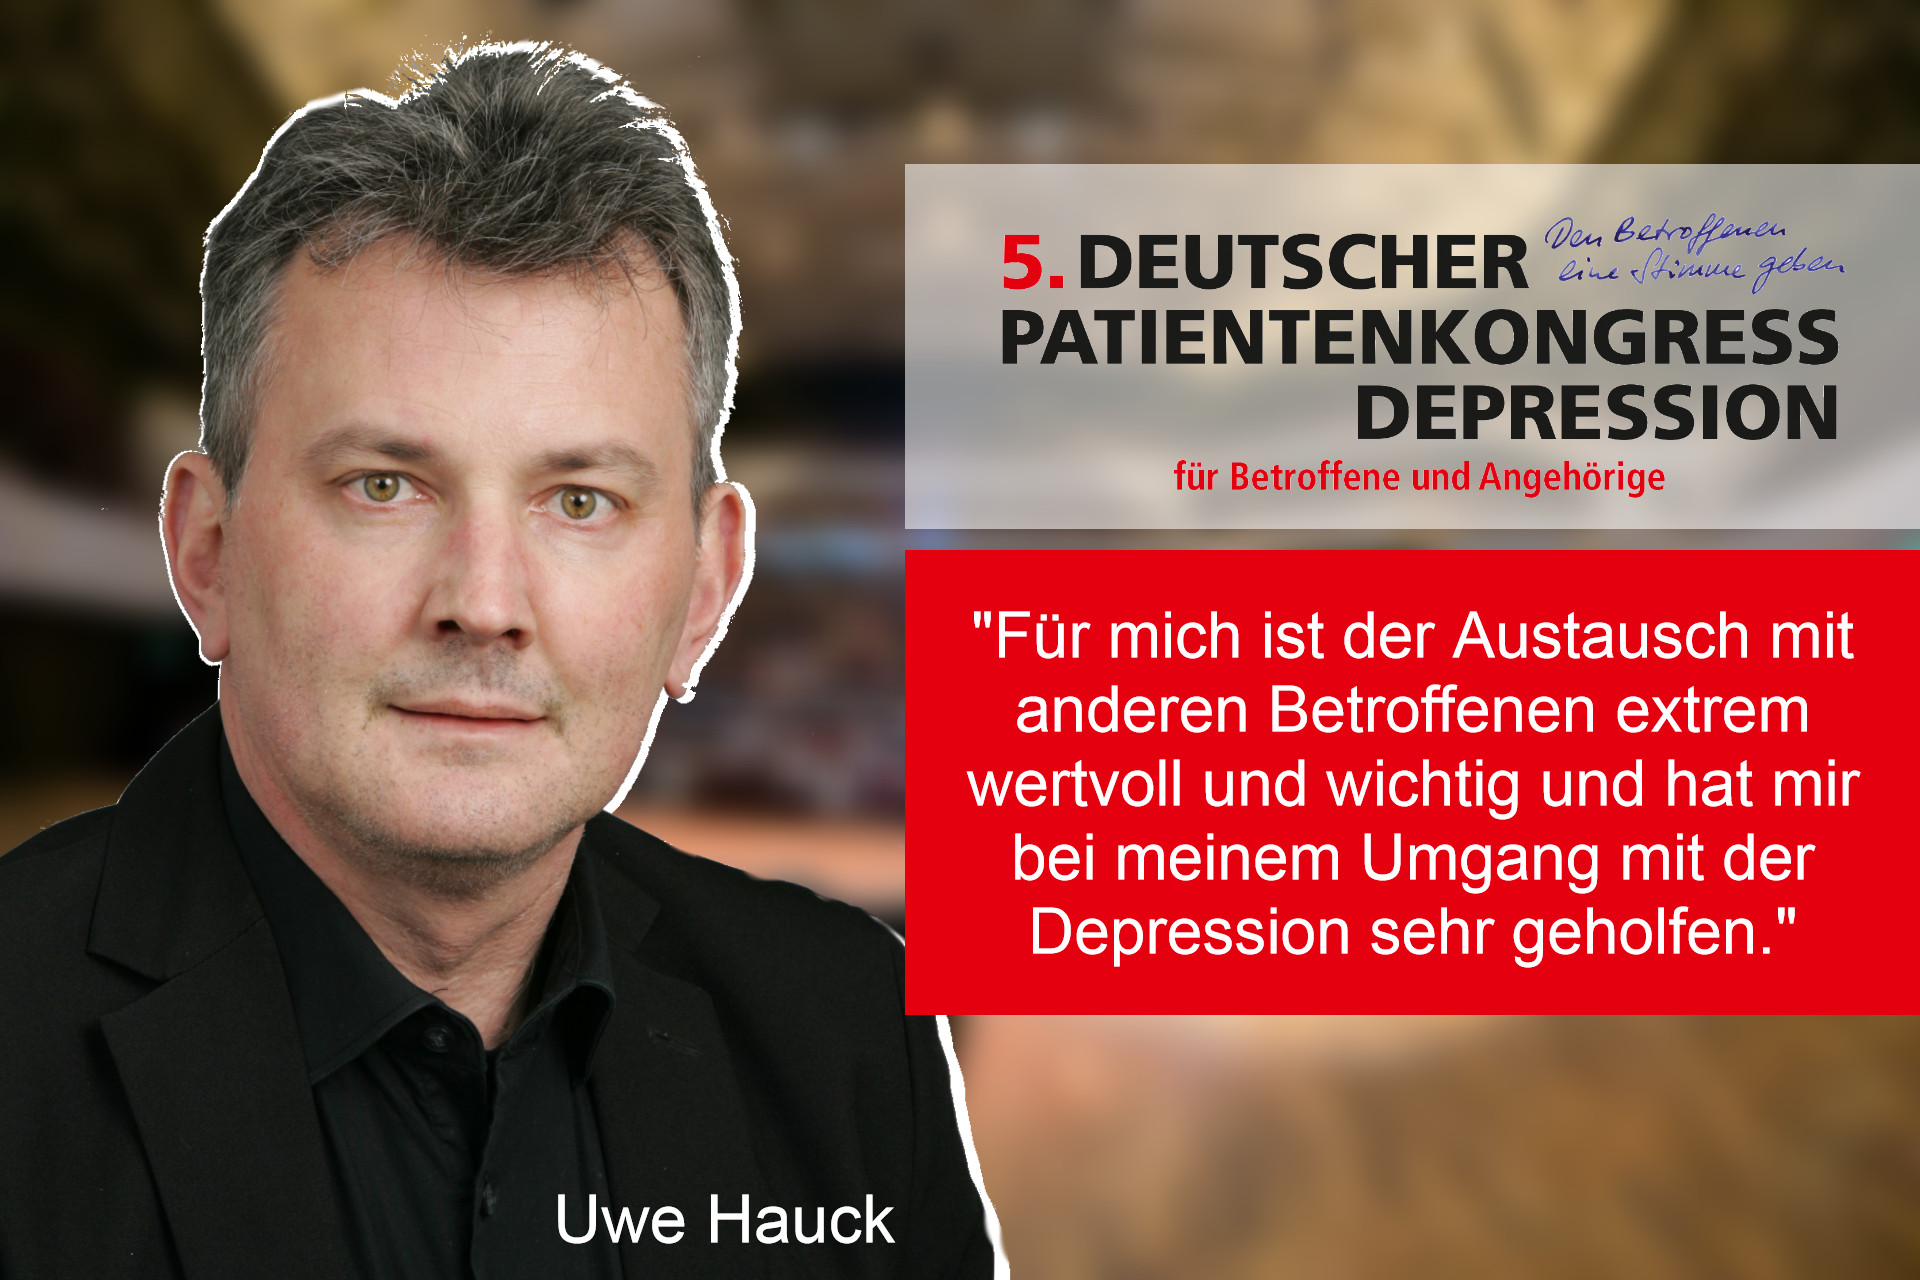 5. Deutscher Patientenkongress Depression